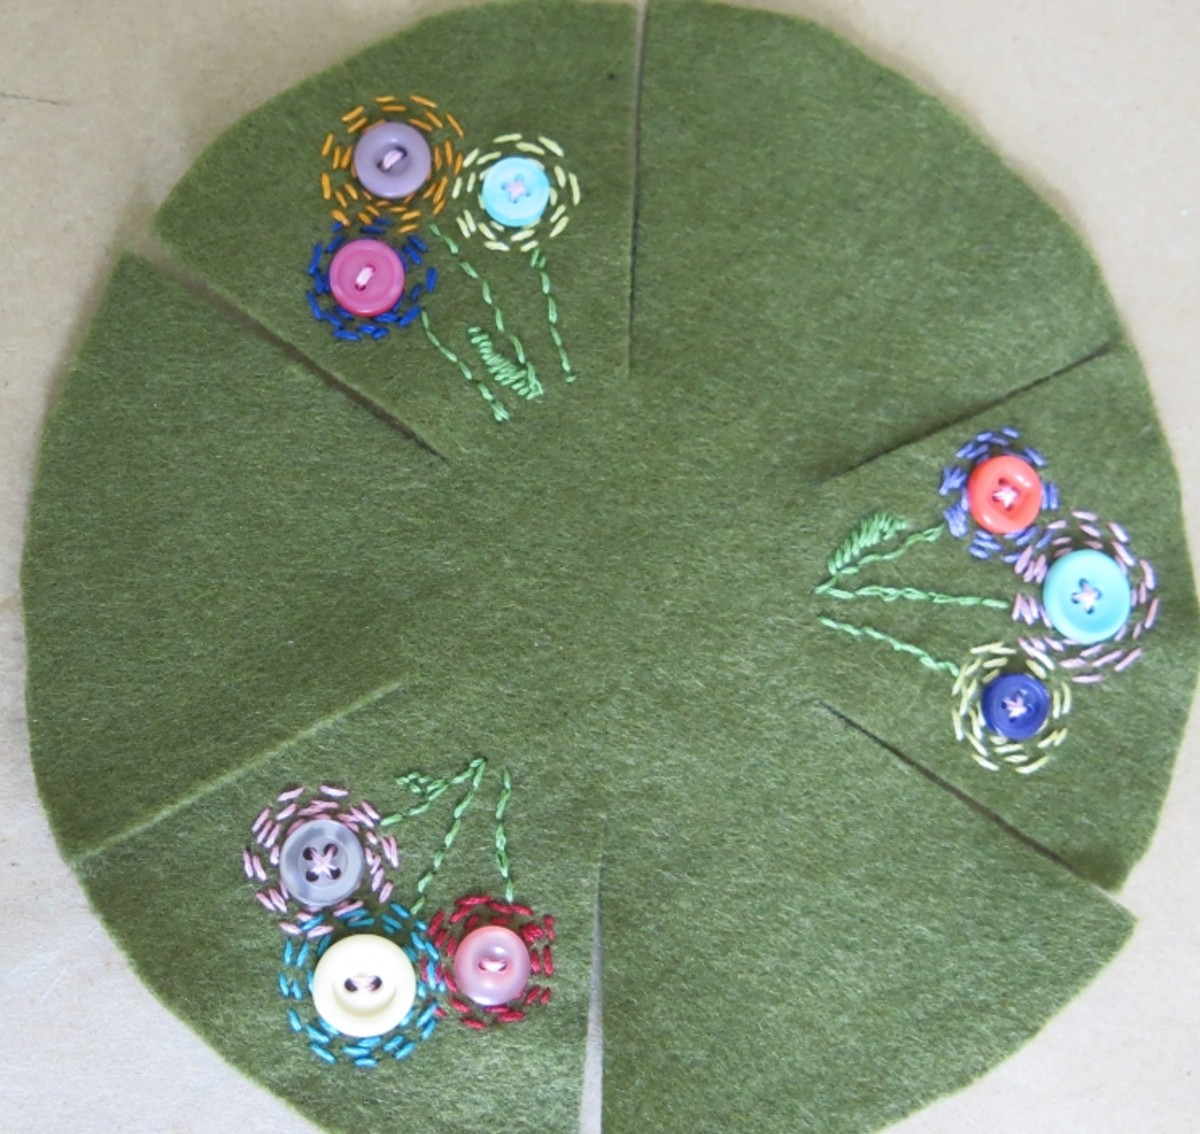 Decorating Your Pincushion